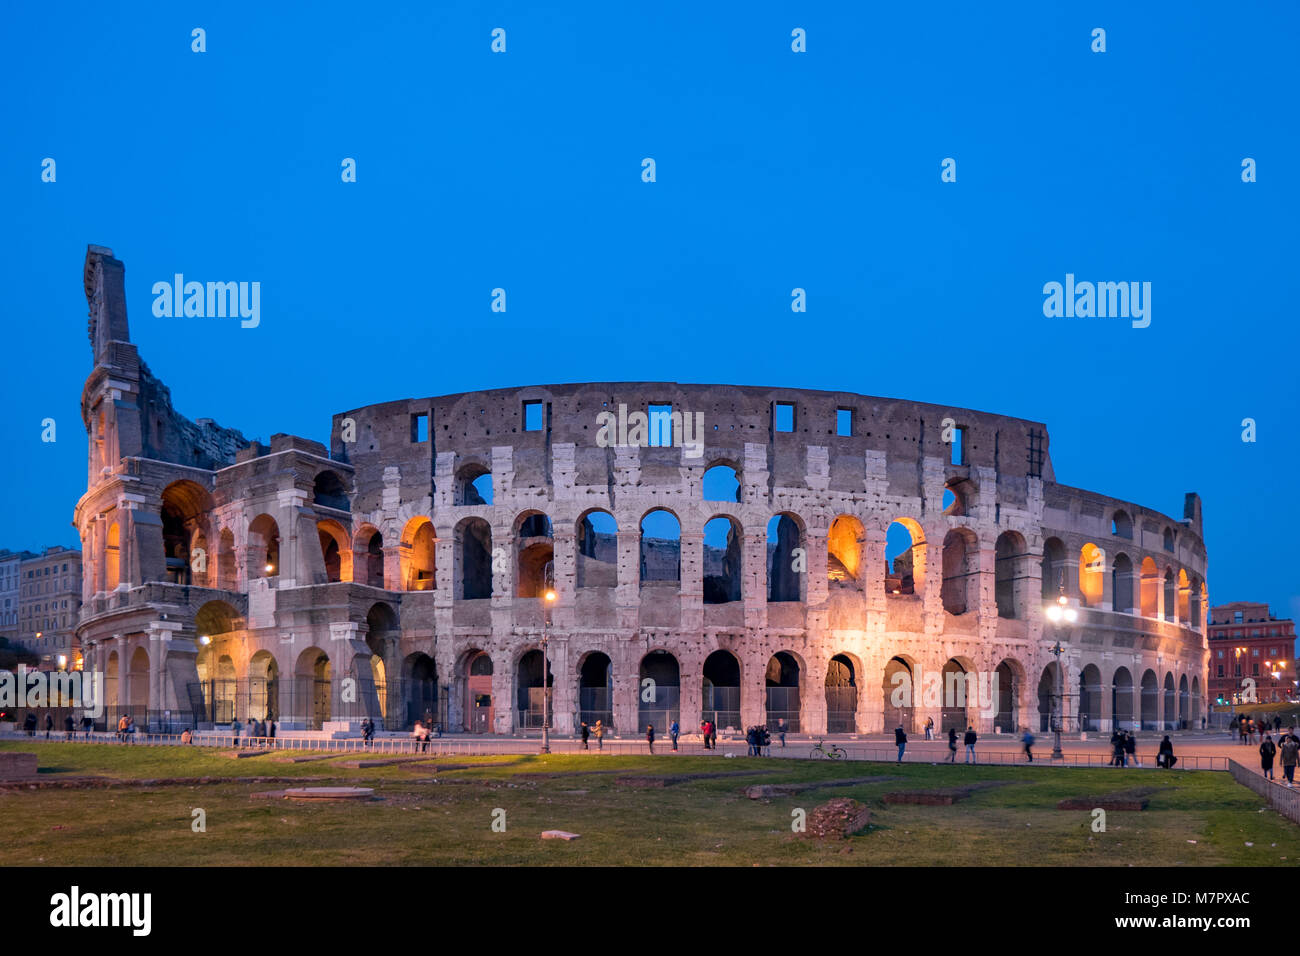 Rome by night the Colosseum - Stock Image